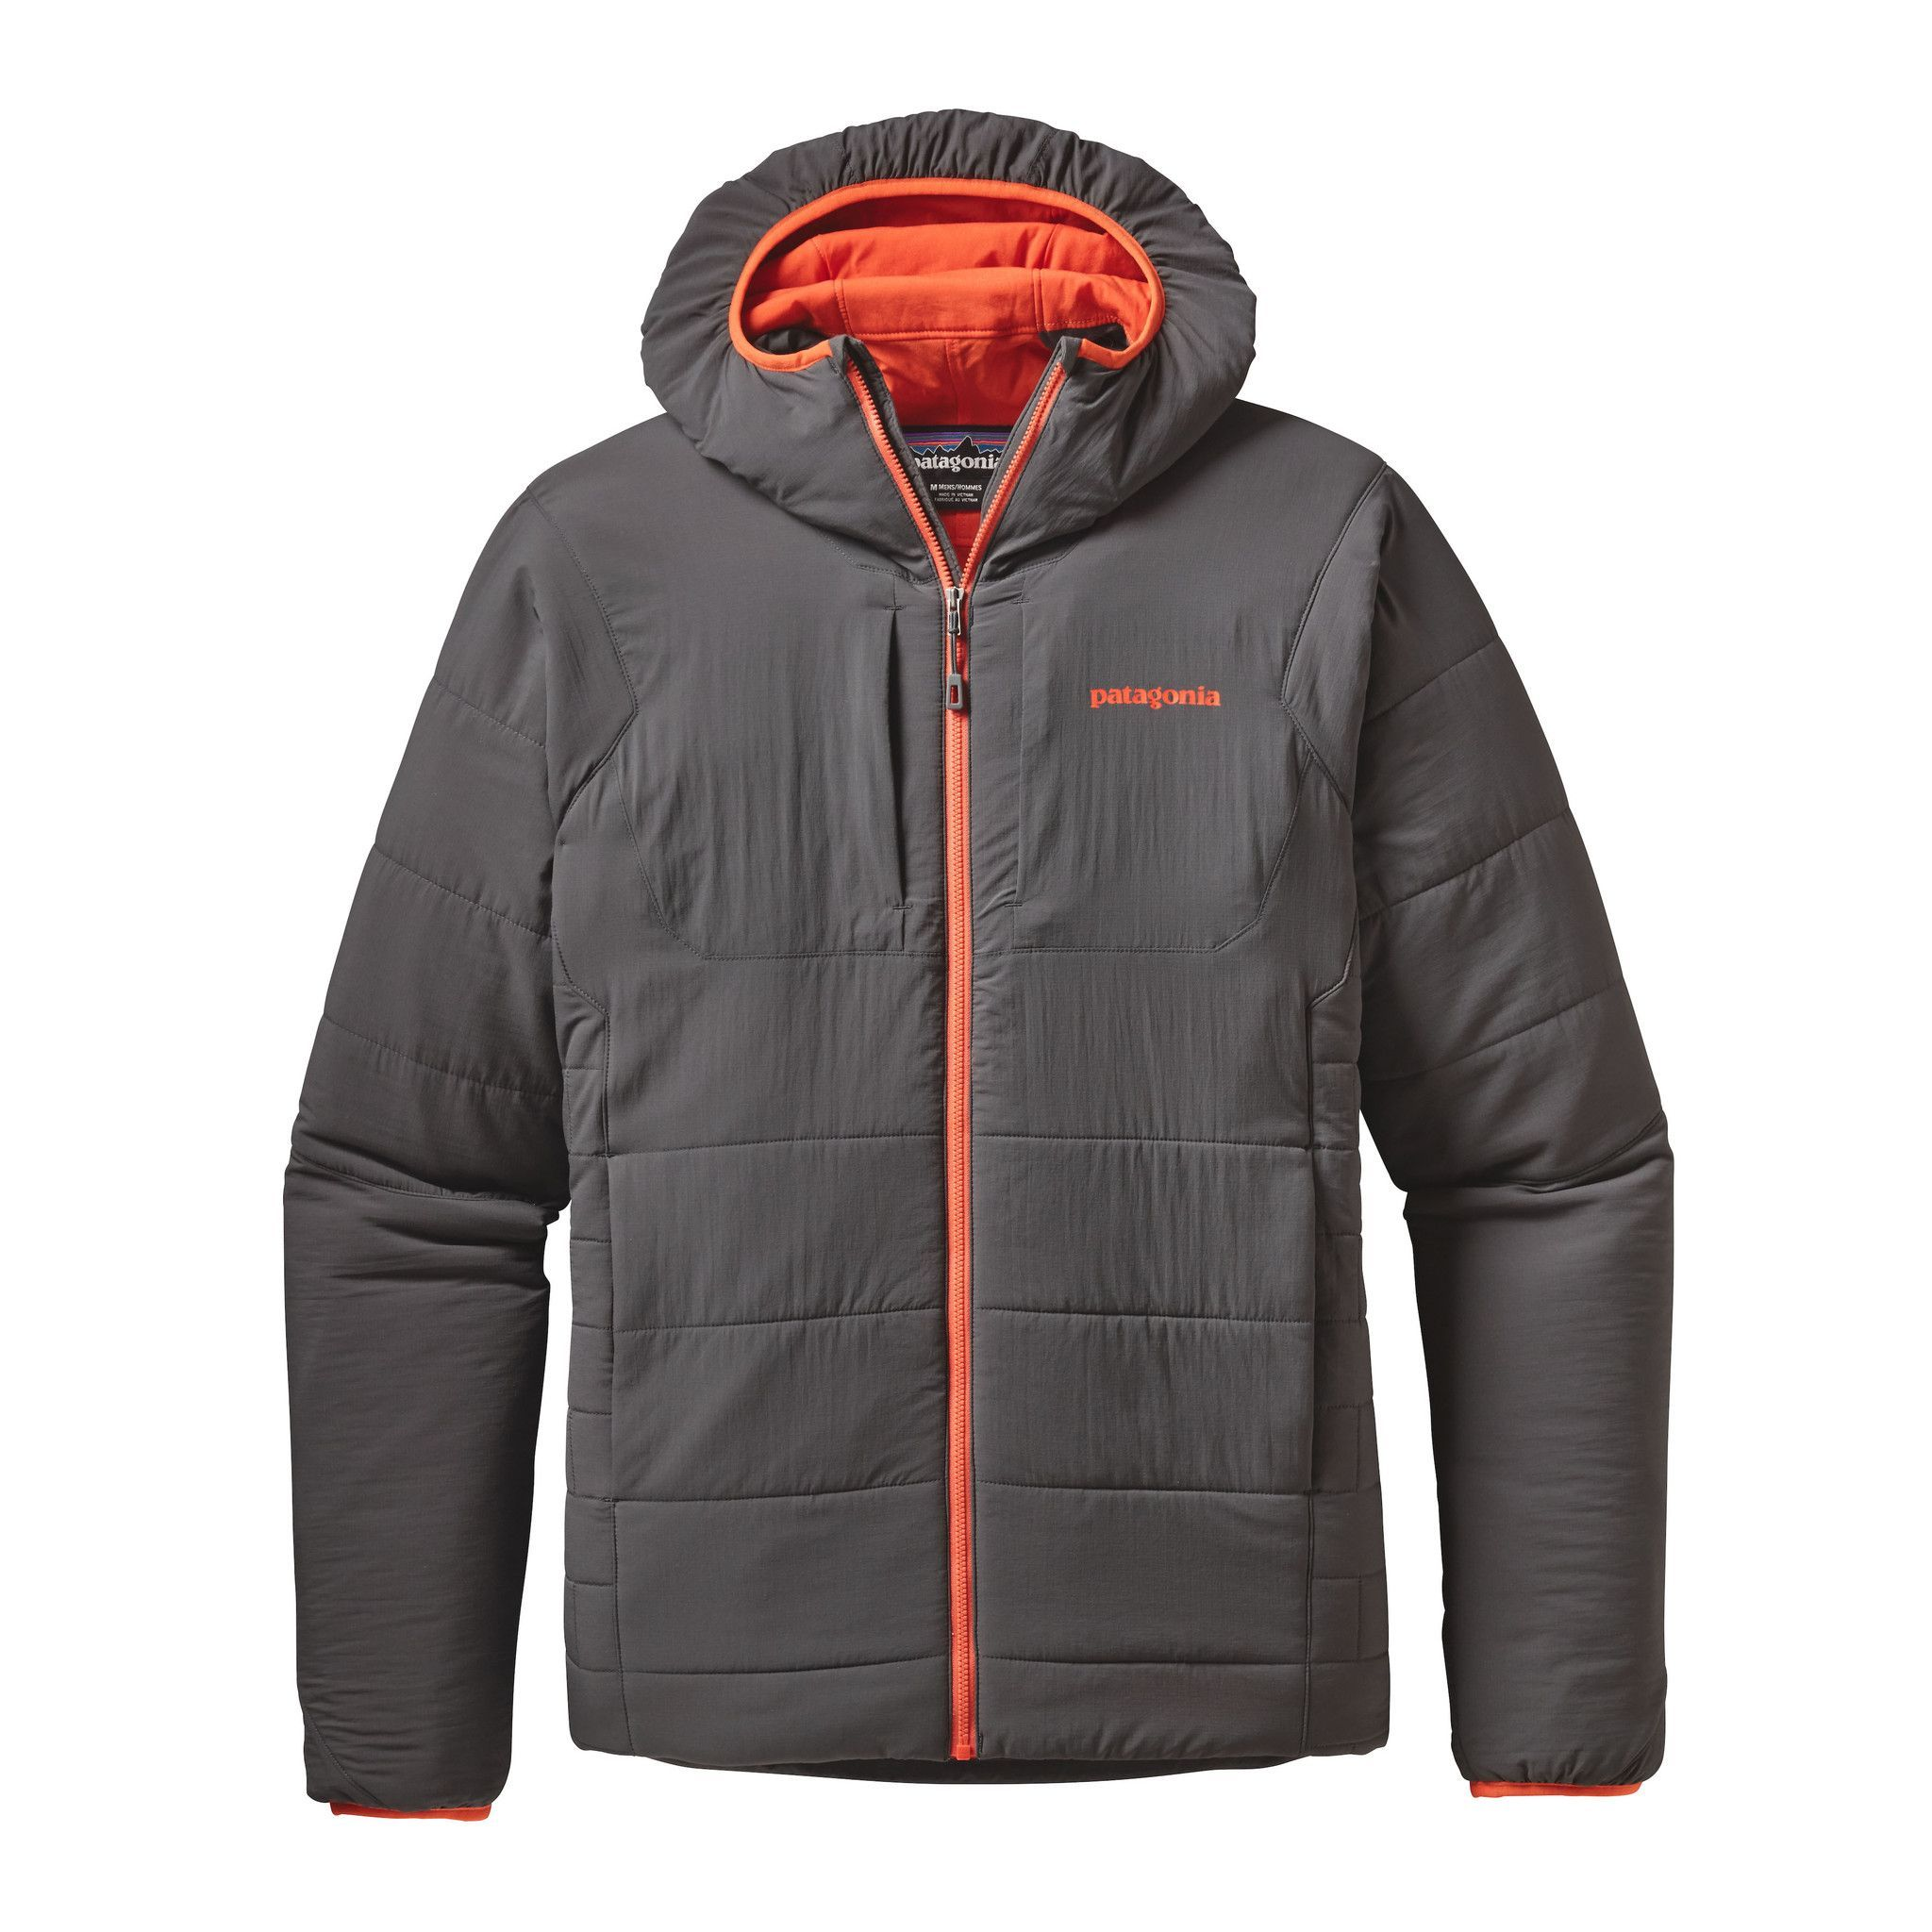 Patagonia men's nanoair hoody Jackets, Hooded jacket